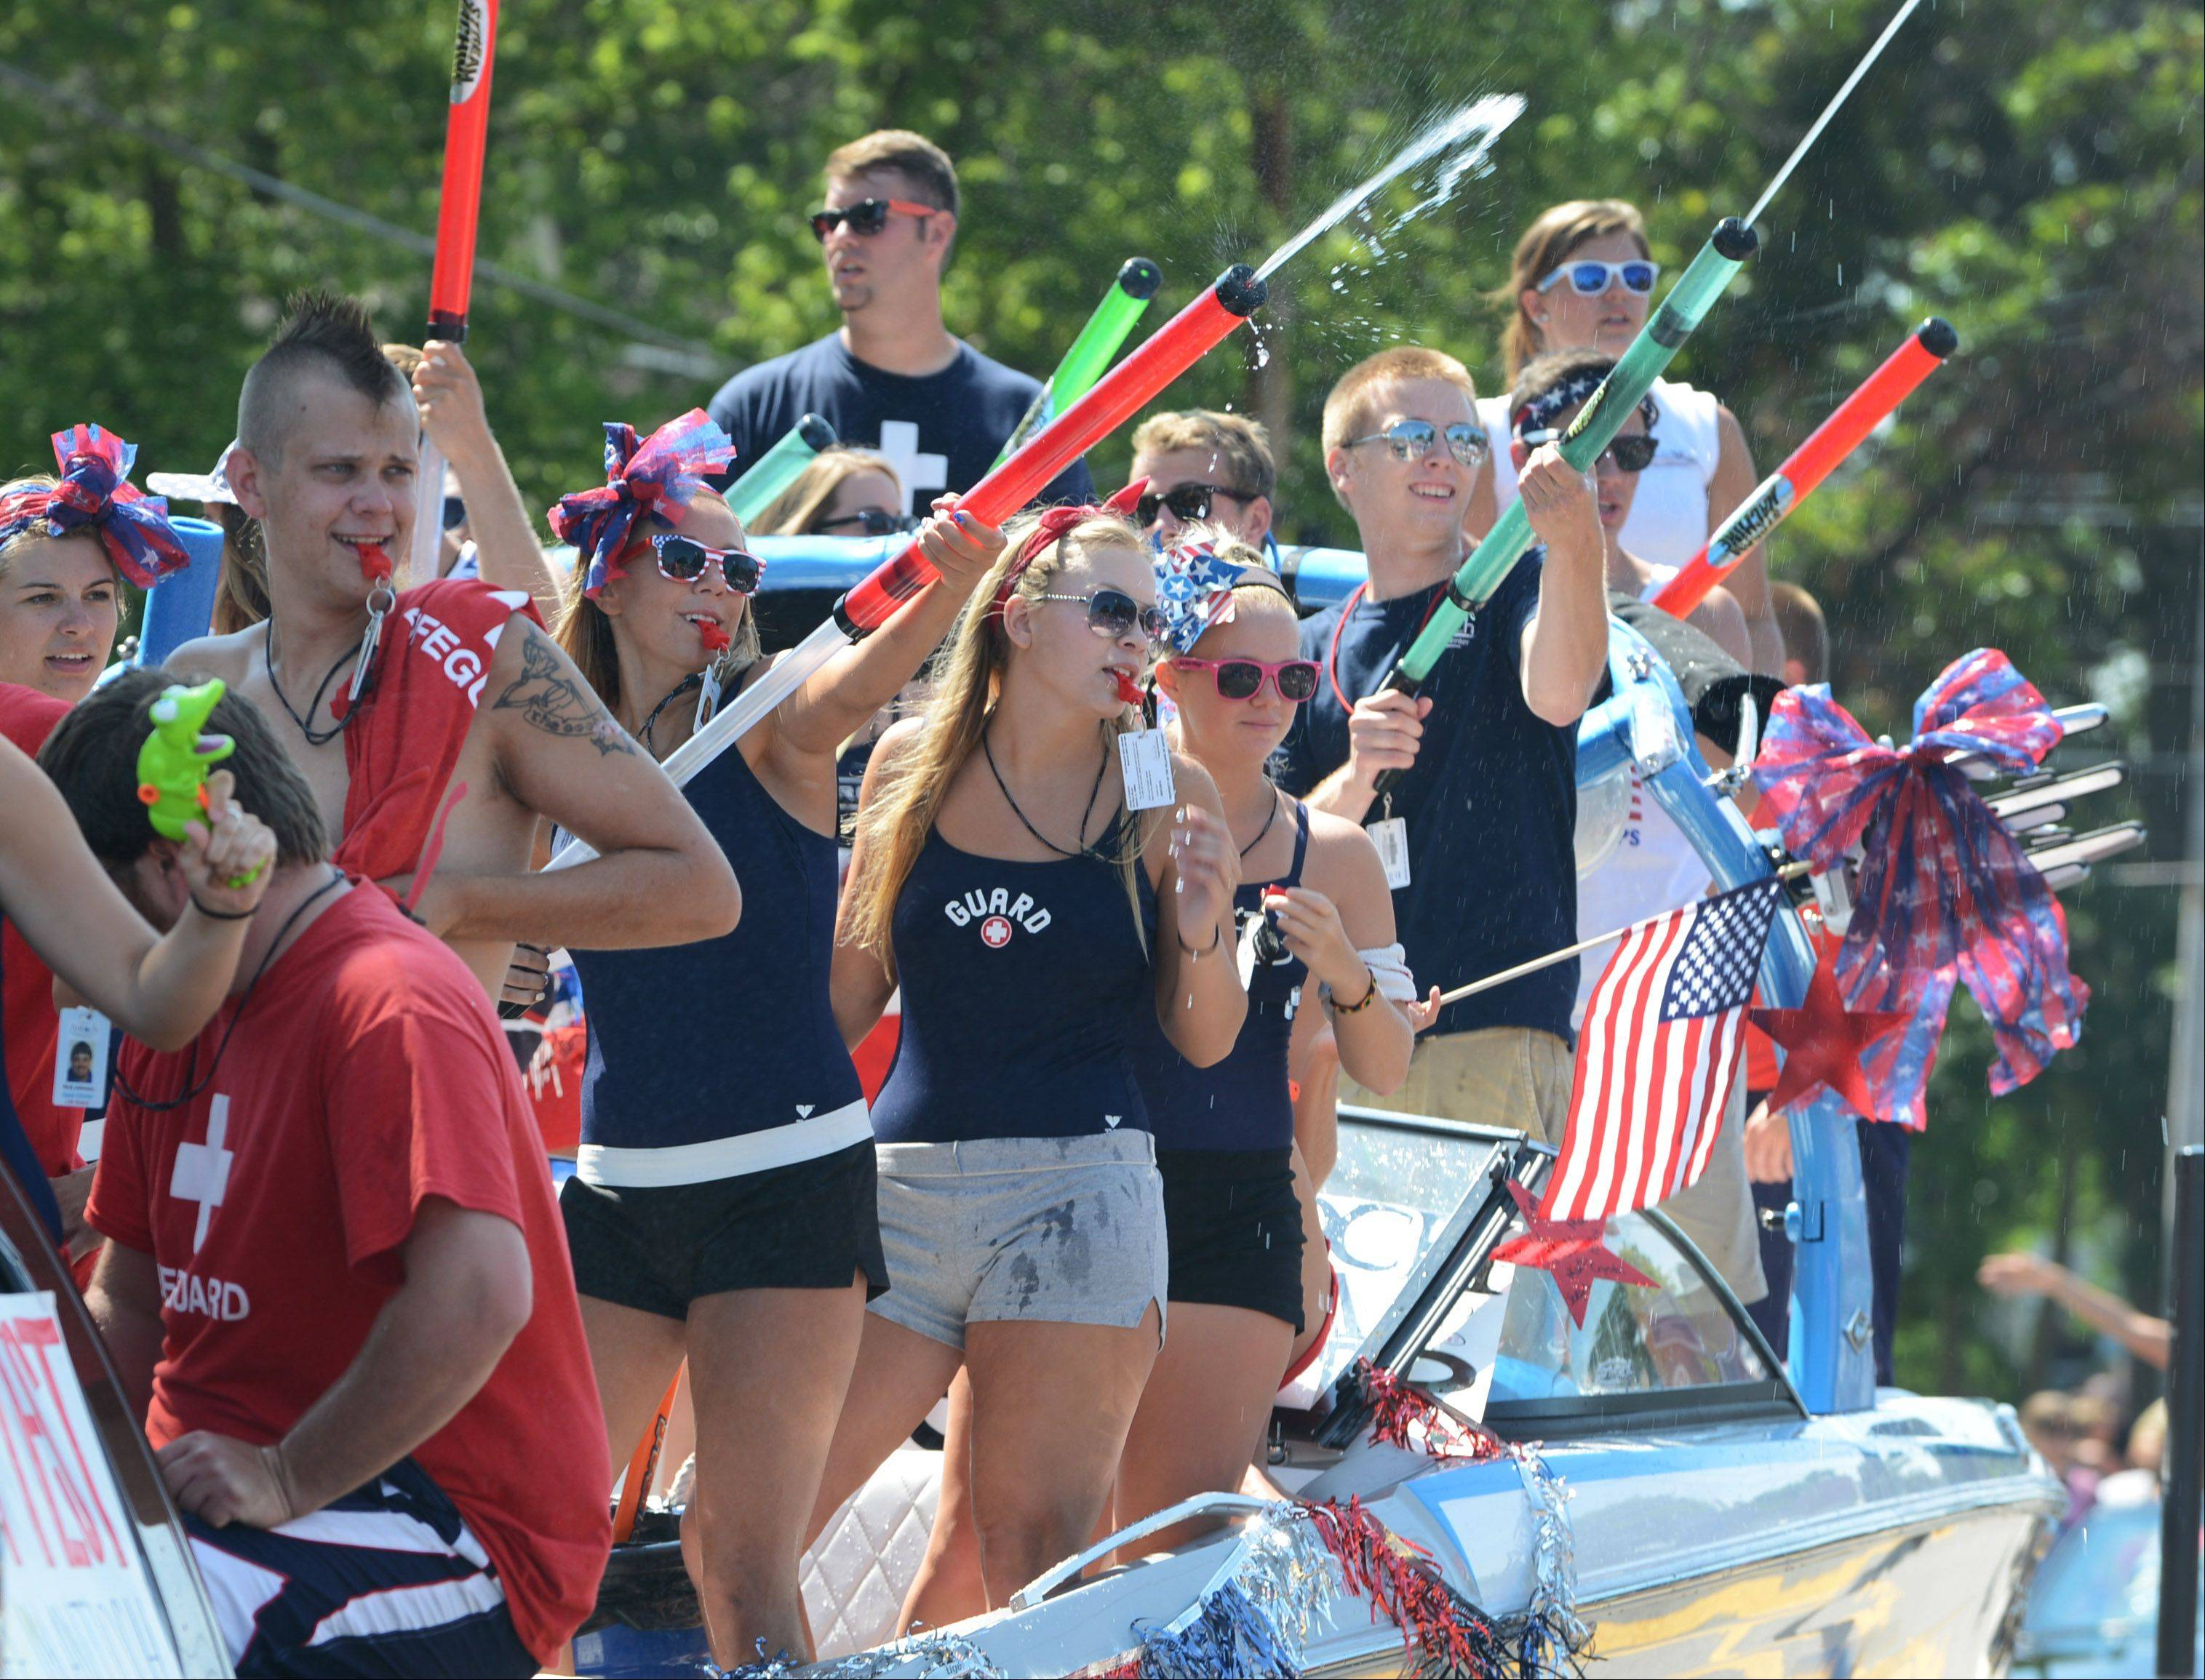 Life guards from the Antioch Aqua Center spray parade-goers along Main Street Thursday morning during Antioch's Fourth of July parade.